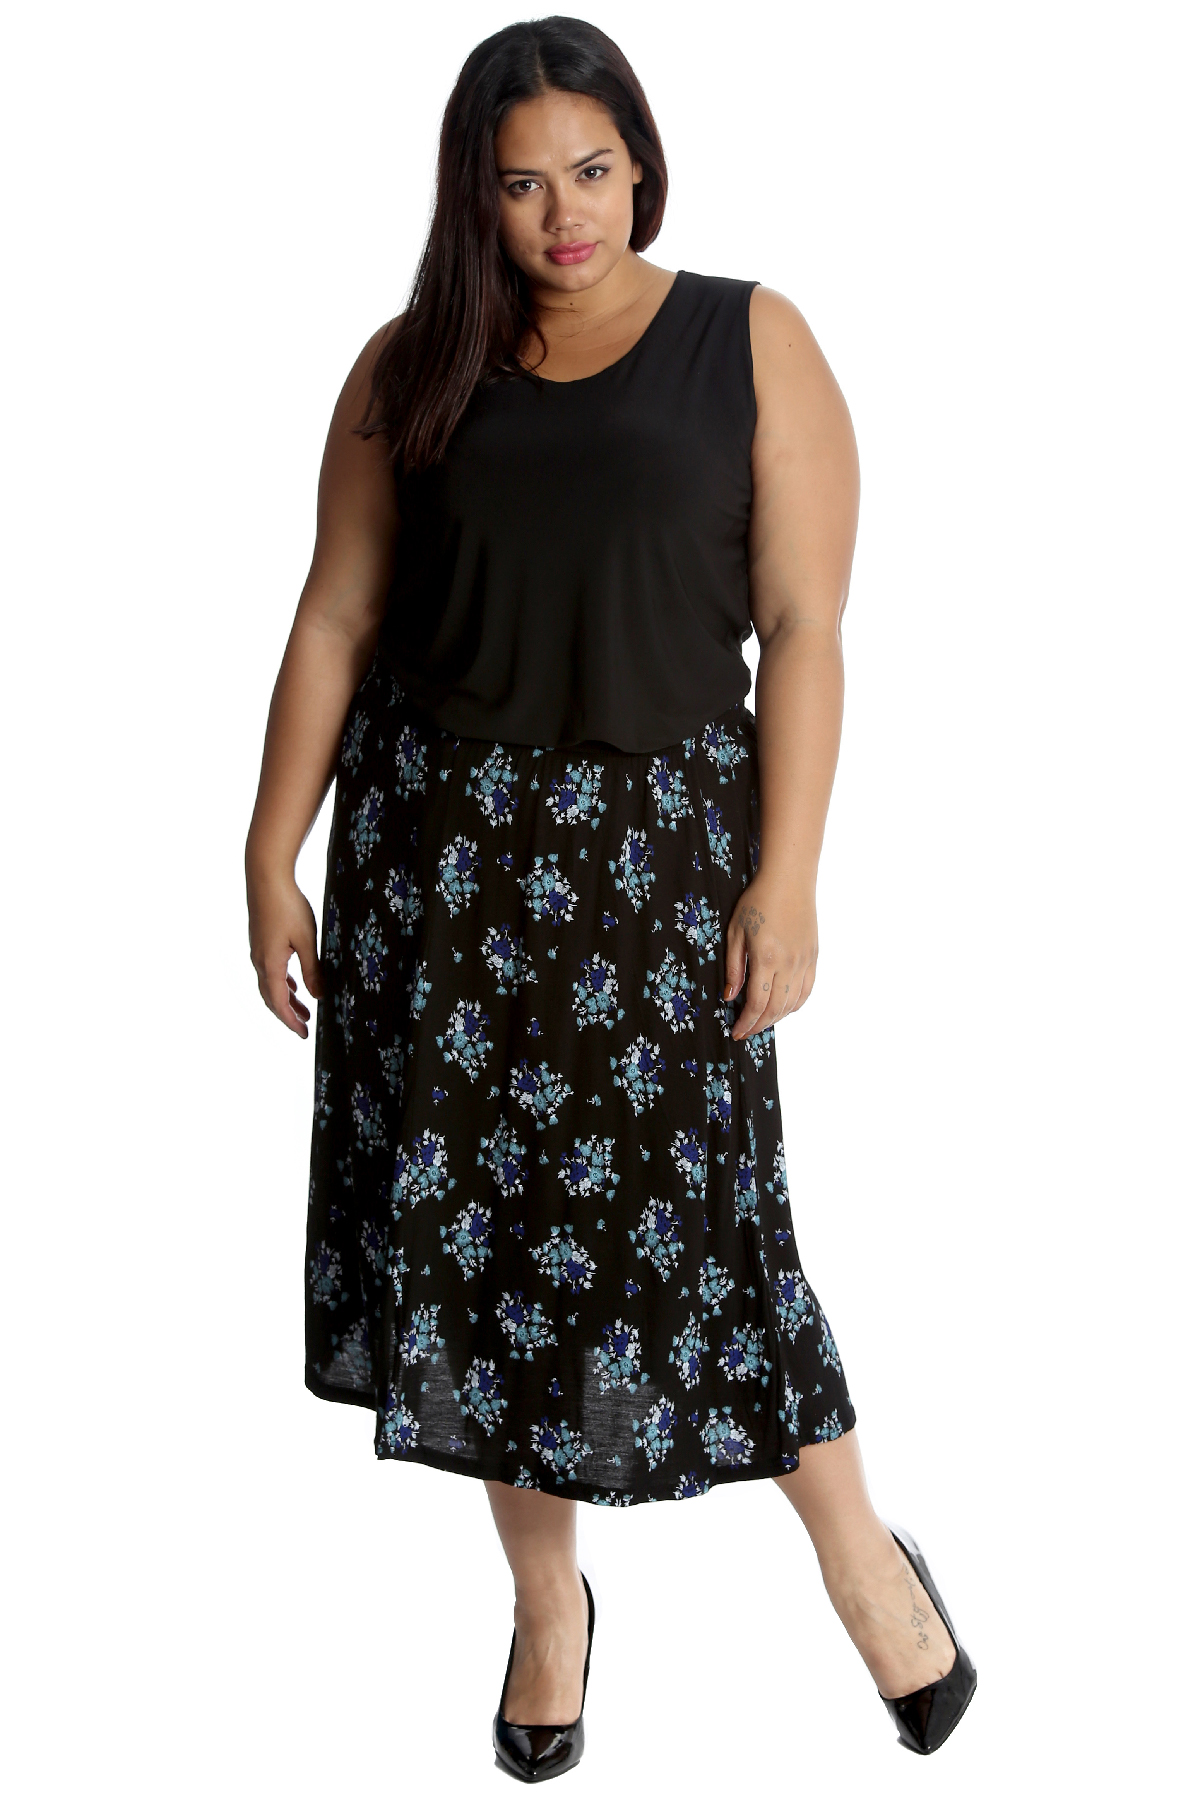 New Ladies Skirt Plus Size Womens Maxi Style Elasticated A-Line Long Nouvelle